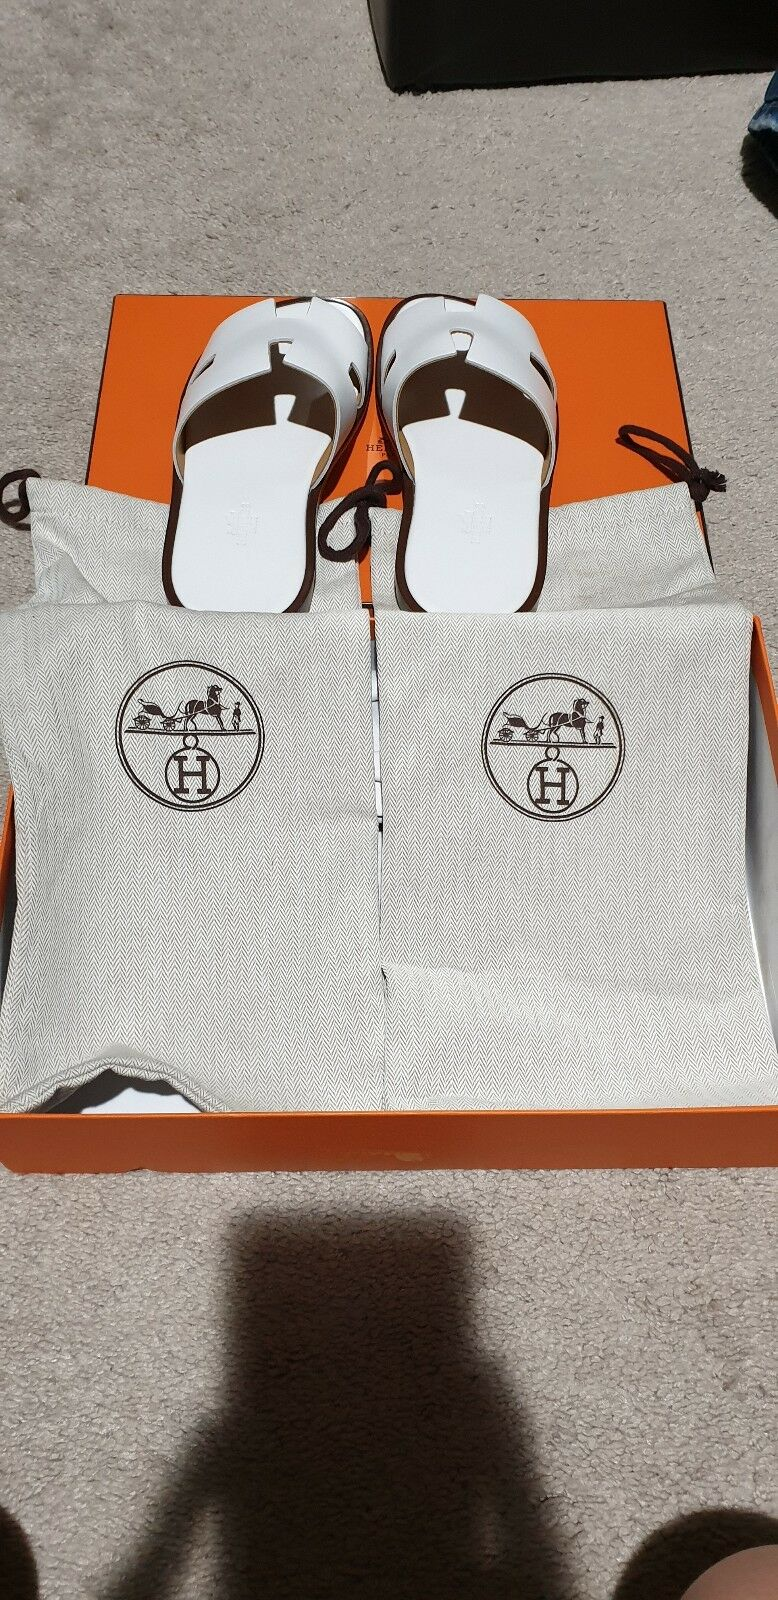 HERMES Men's H Sandal in White Size 40 (US 6.5)  BRAND NEW WITH BOX AND DUST BAG